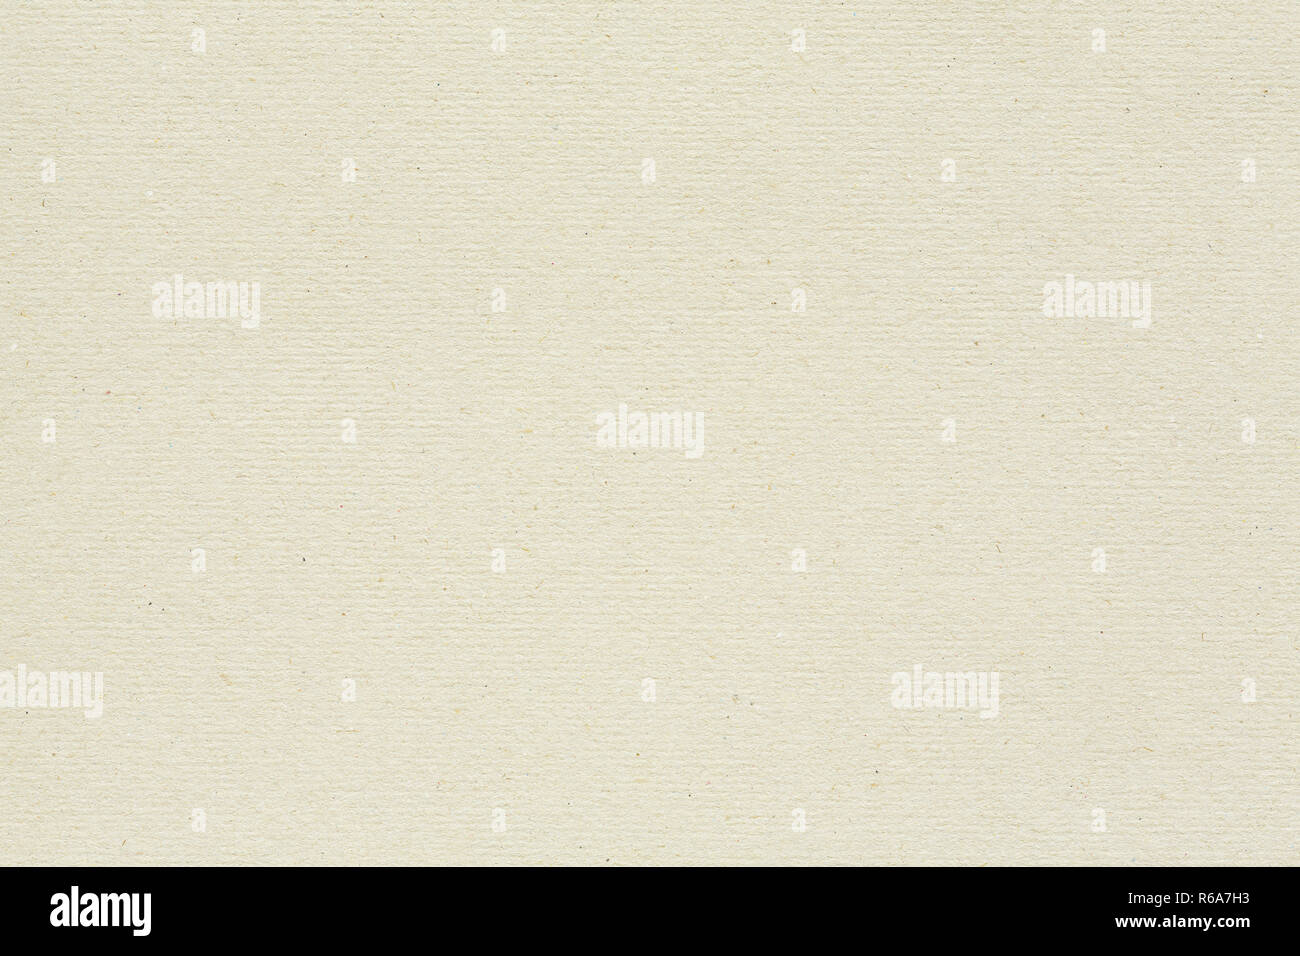 Recycled cardboard background with subtle ribbed pattern and fibre texture - Stock Image